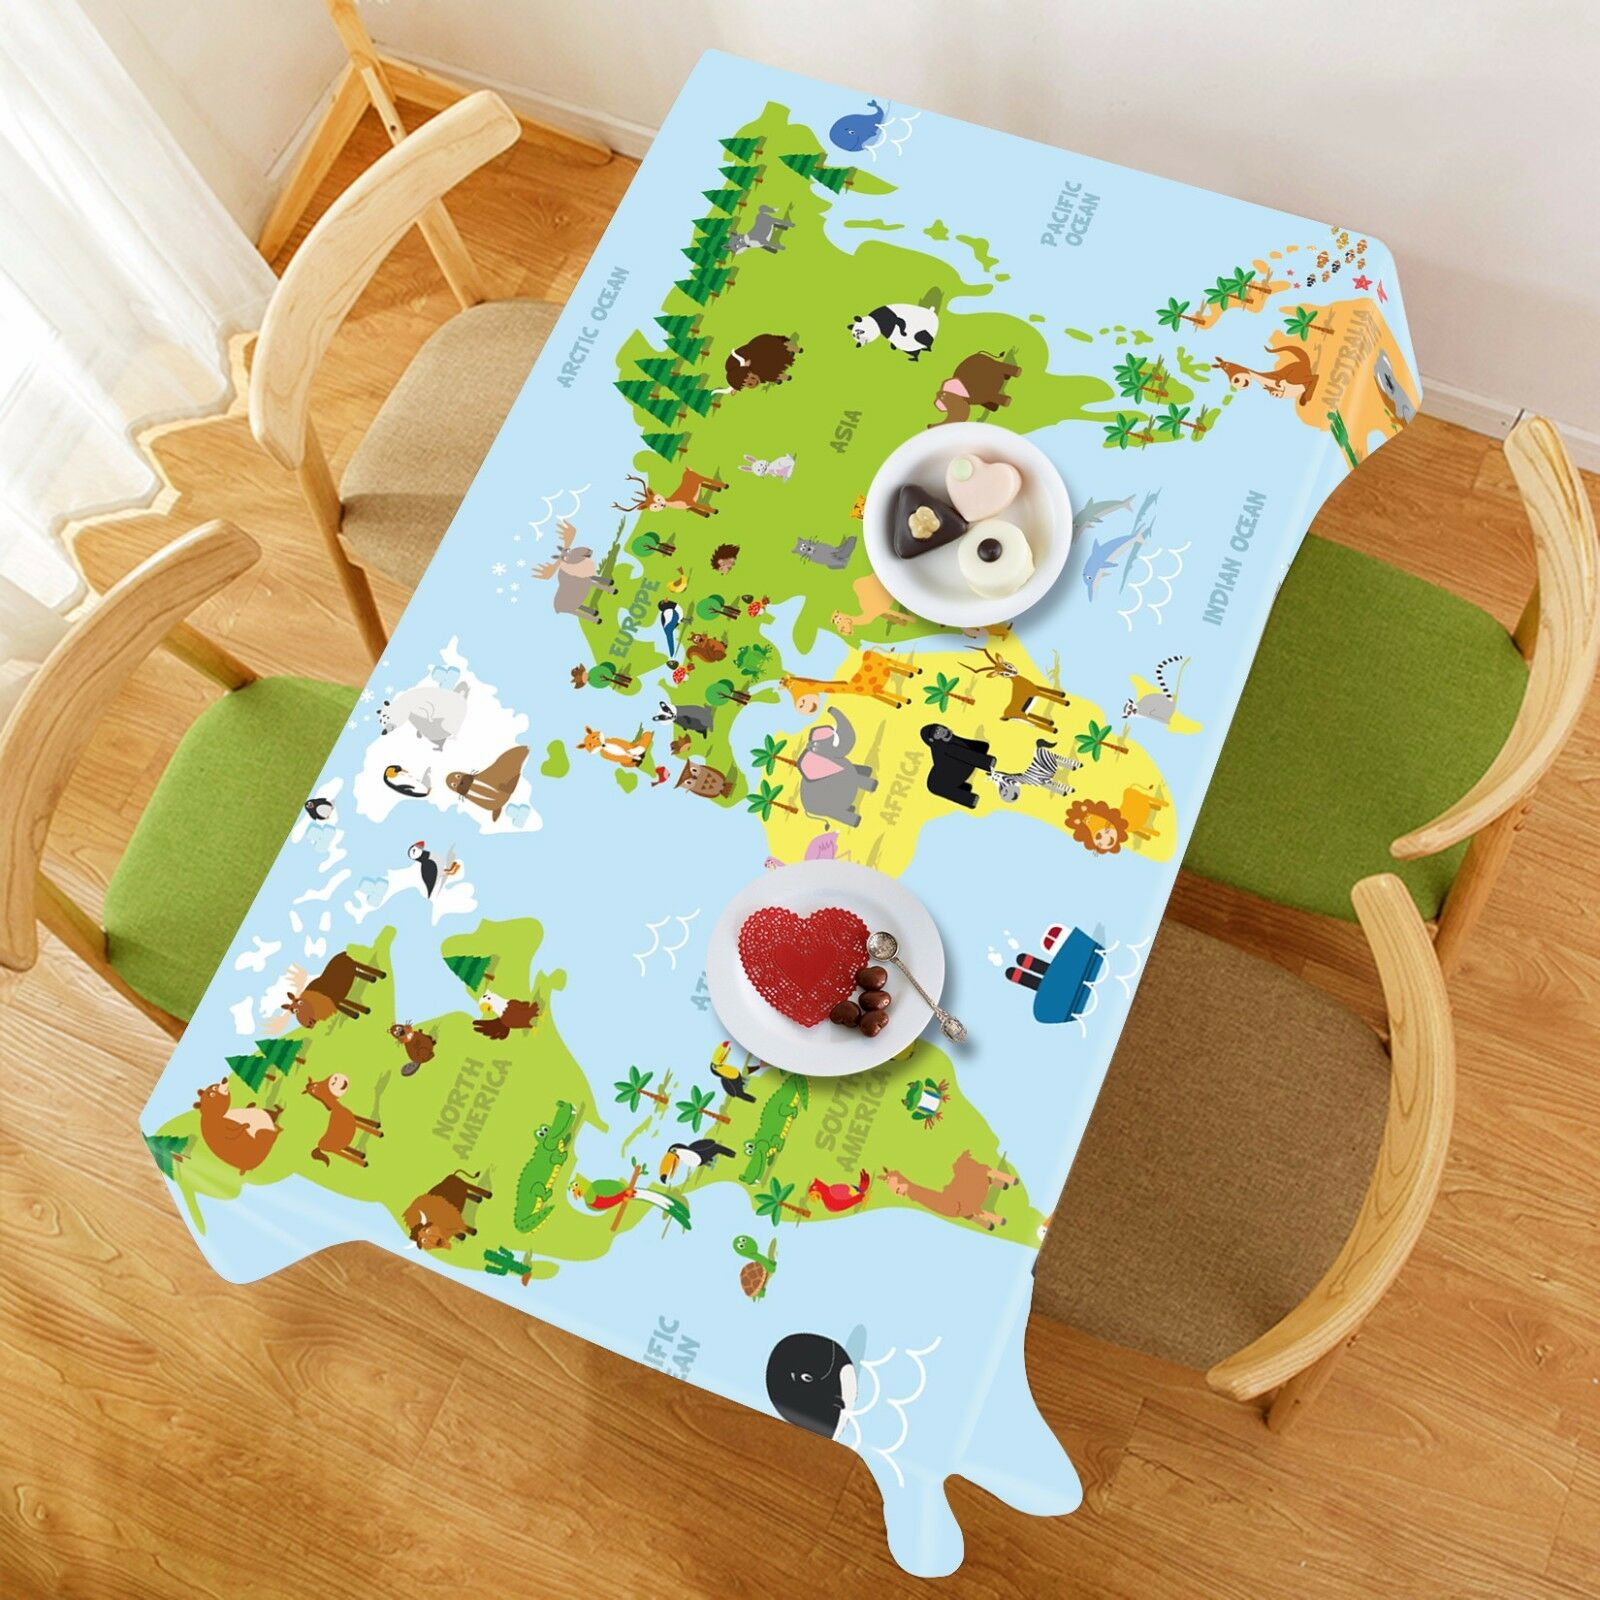 3D World Map 273 Tablecloth Table Cover Cloth Birthday Party Event AJ WALLPAPER